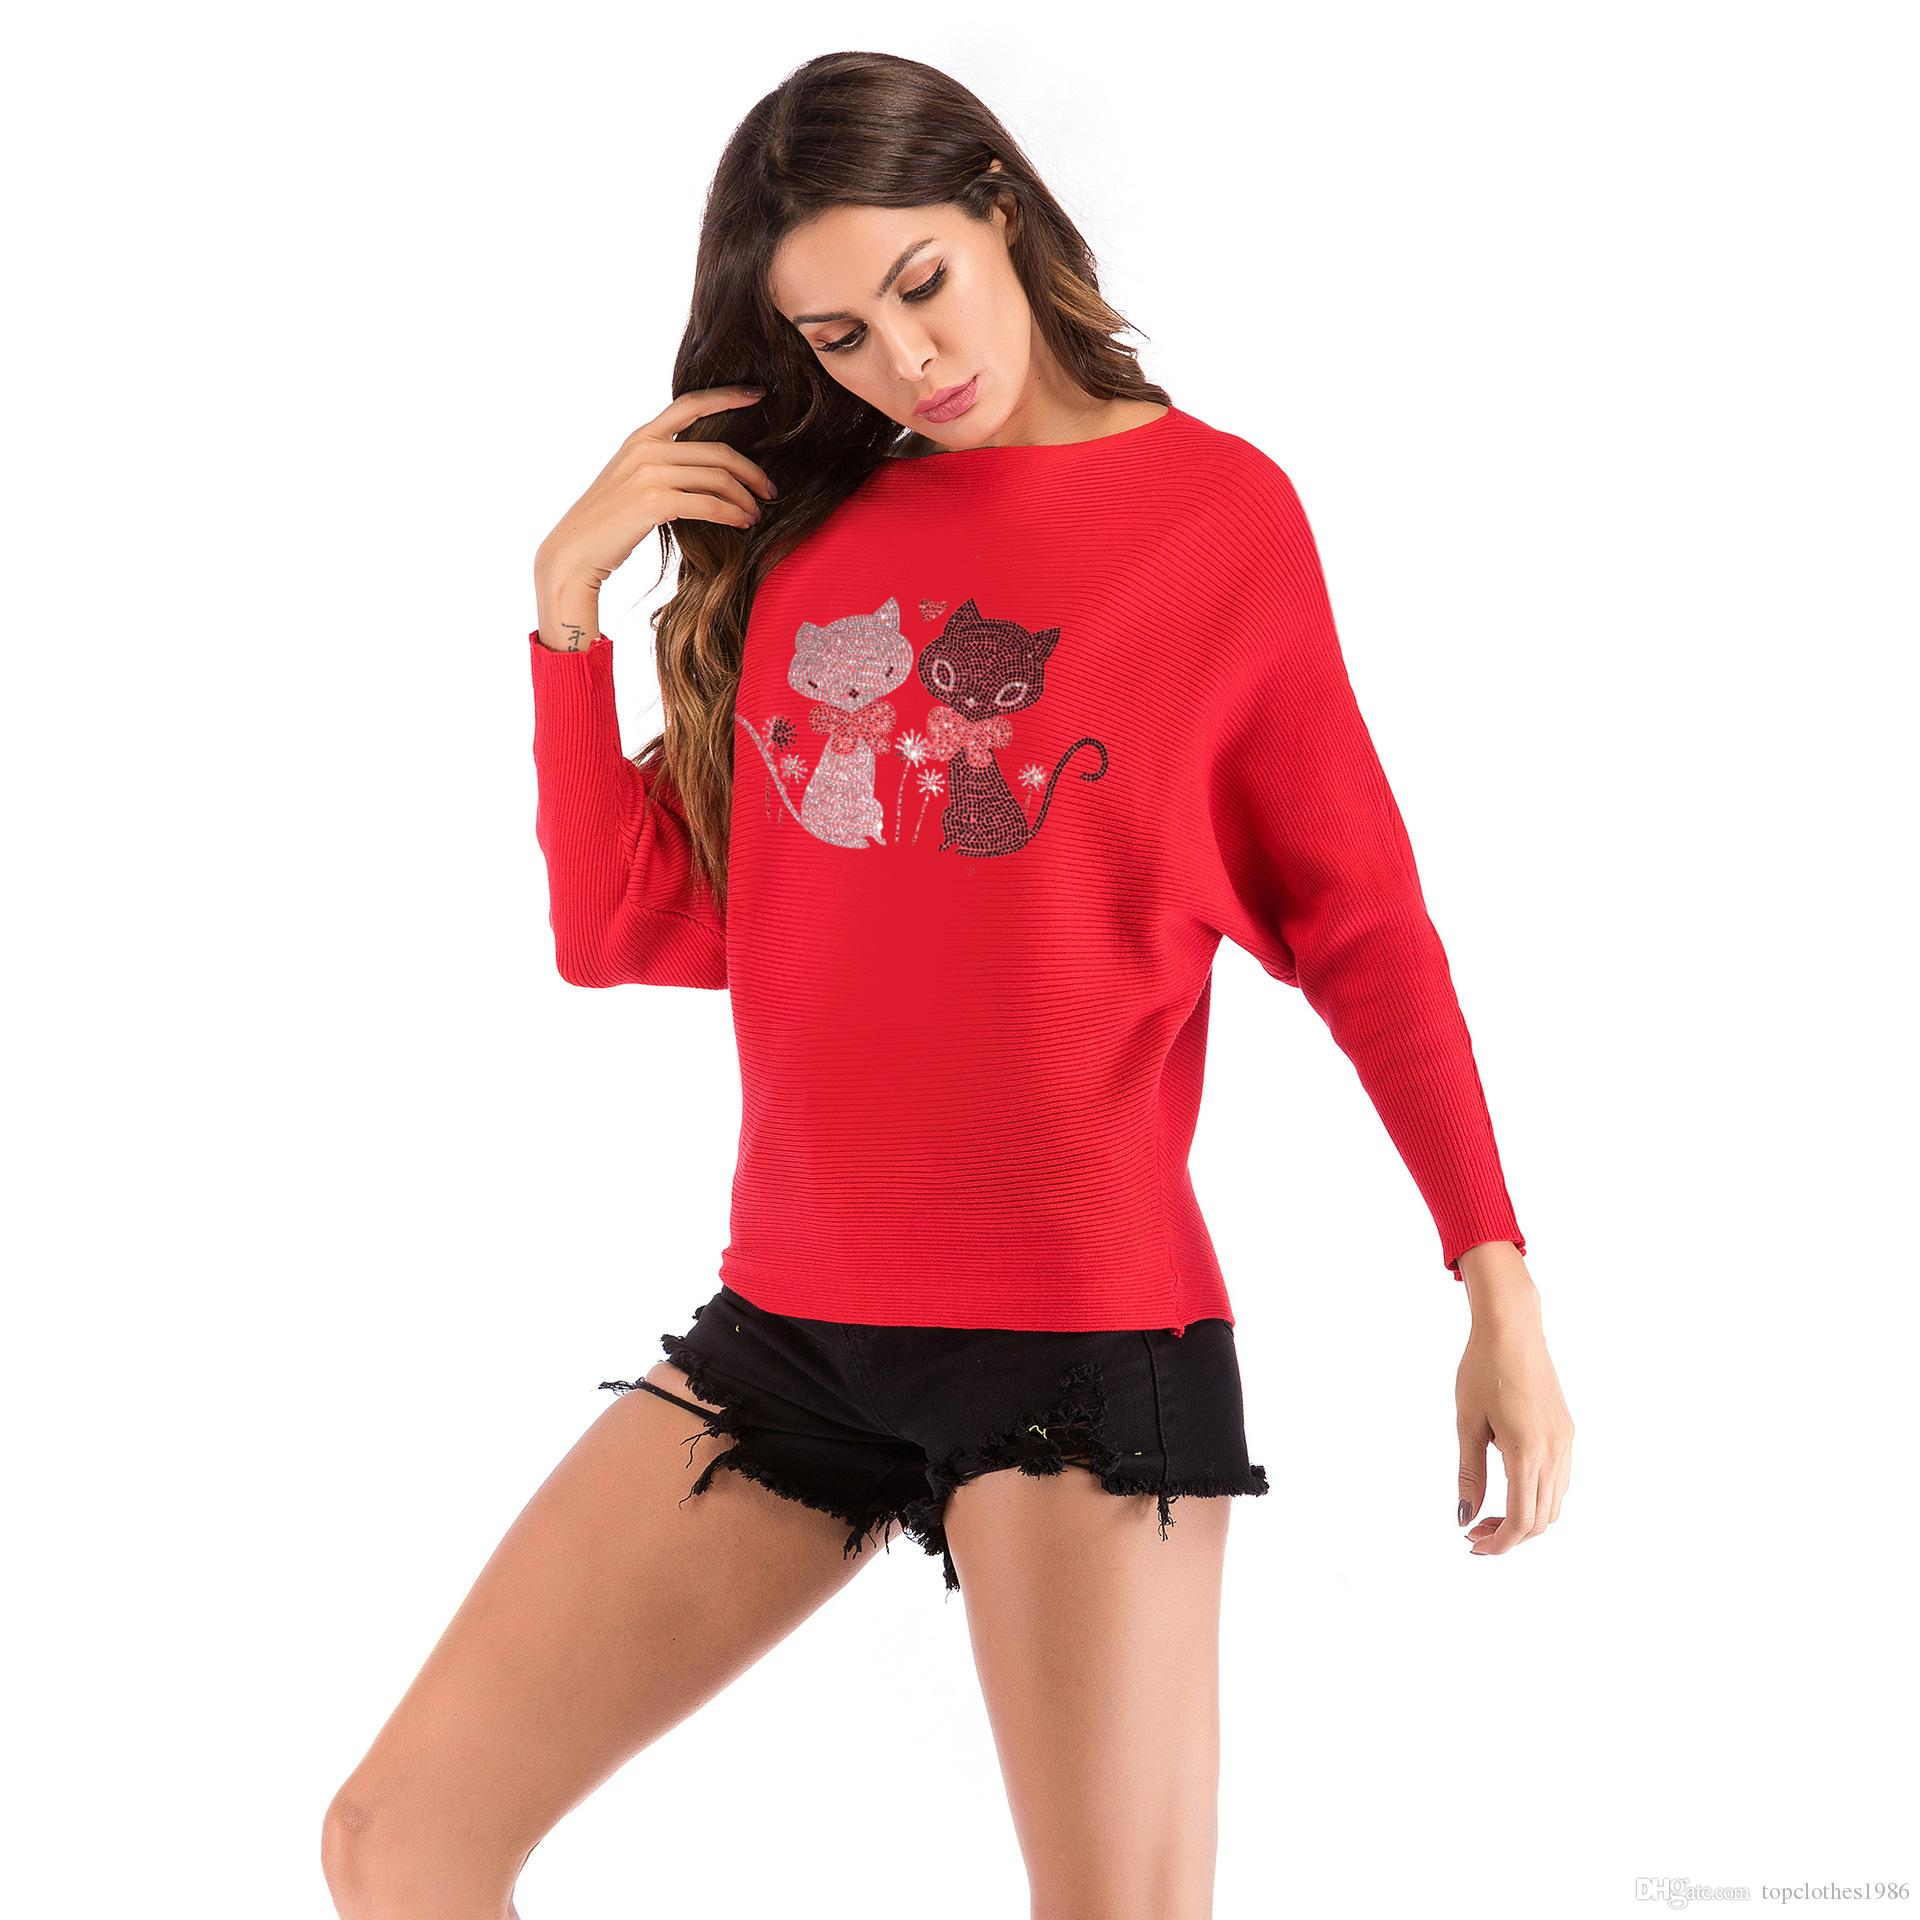 7a90407cd41 2019 Autumn New Year Clothes Bat Sleeve Women S Knitwear Christmas Fashion  Cartoon Cat Loose Pullover Knitted Sweater Red Pink White M L XL From ...